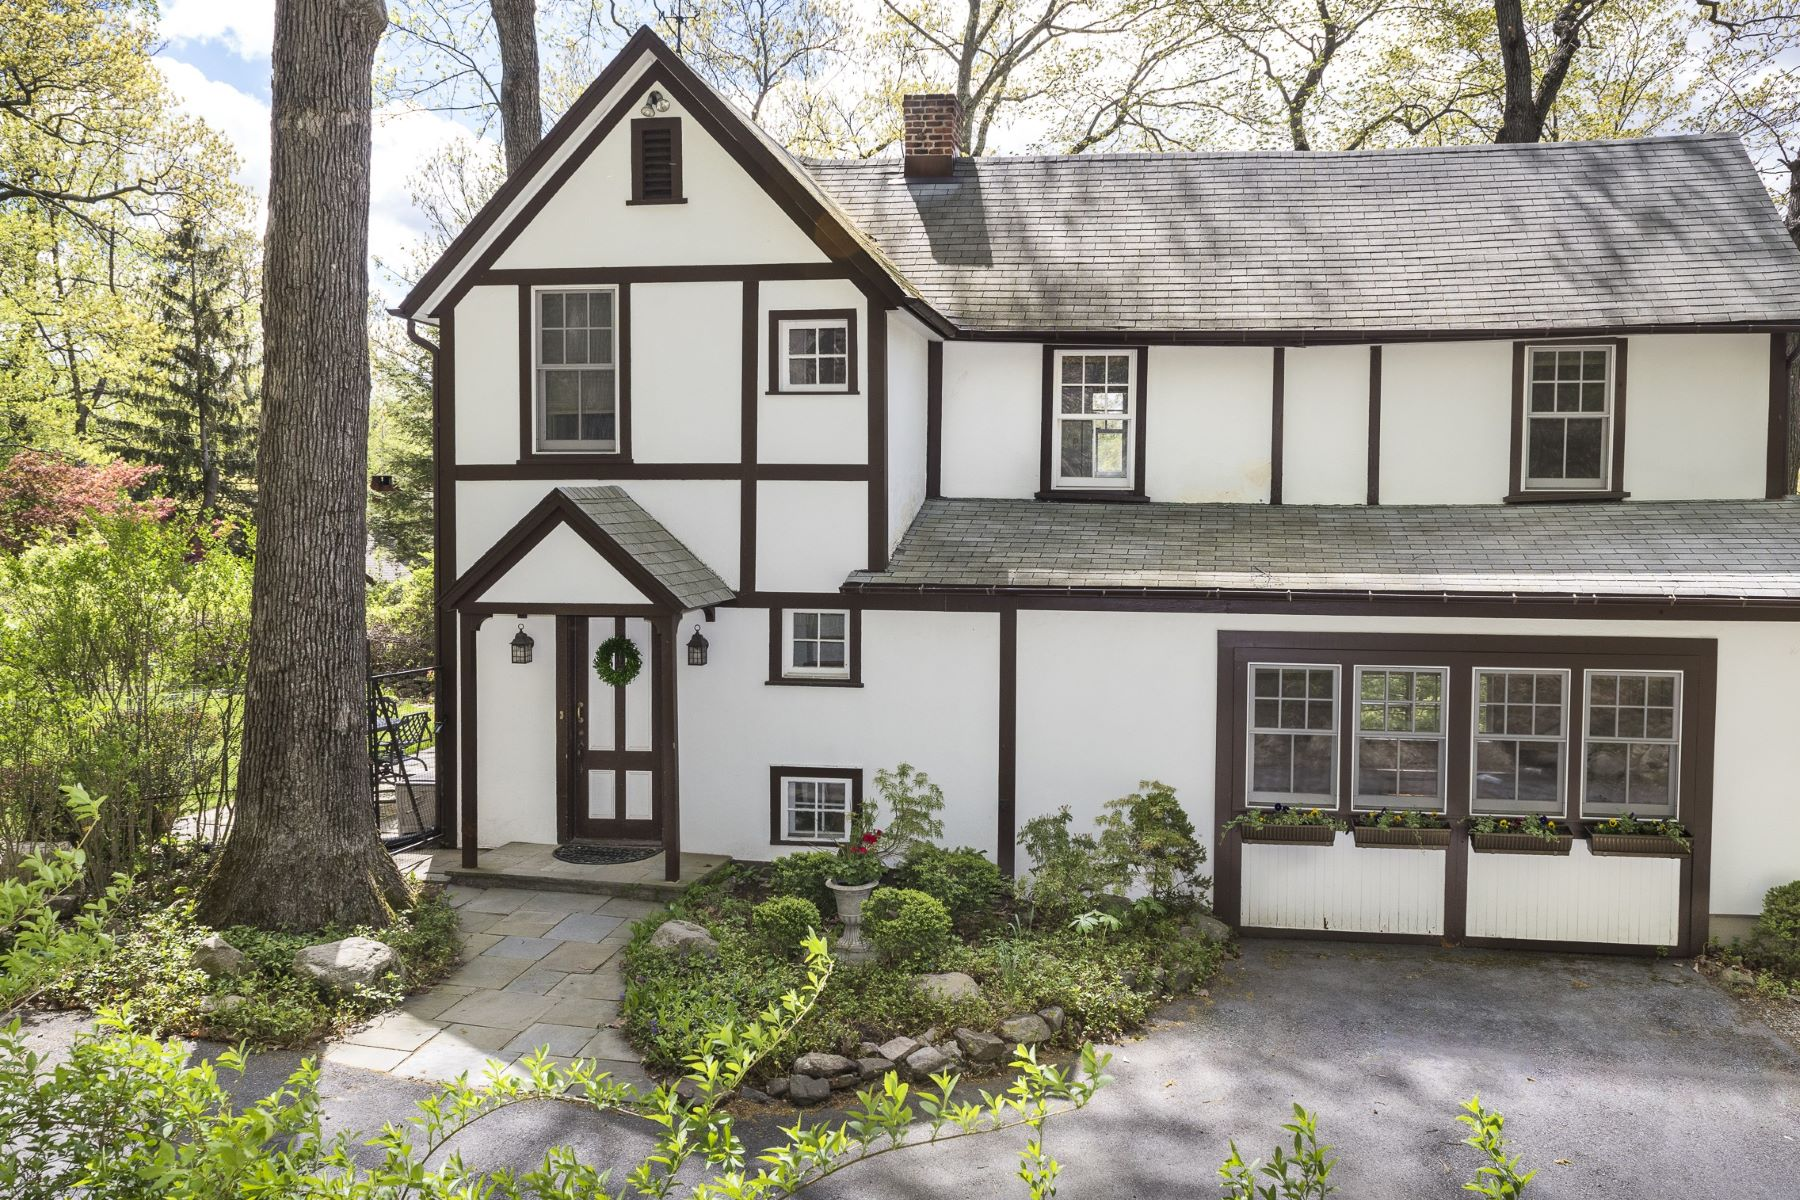 Moradia para Venda às English Cottage 2 Stable Road Tuxedo Park, Nova York, 10987 Estados Unidos